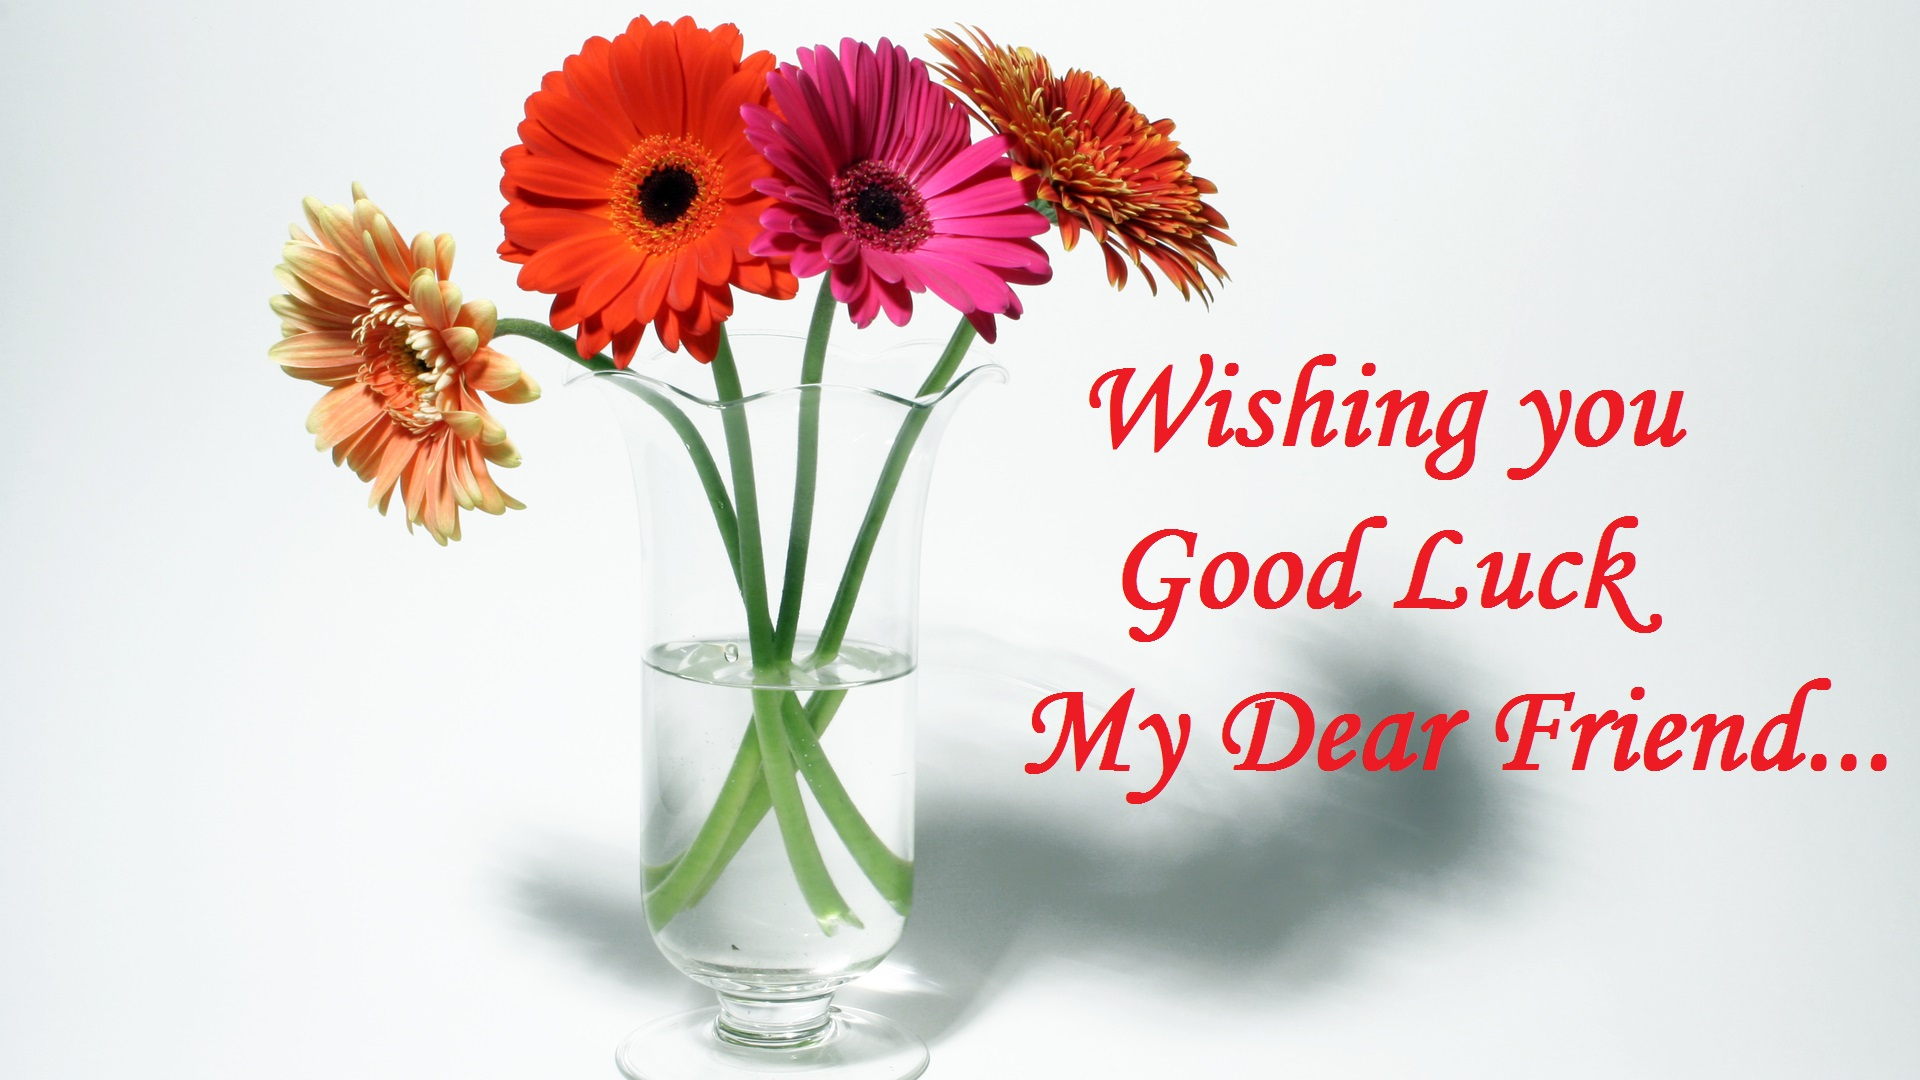 Good luck wishes for best friend